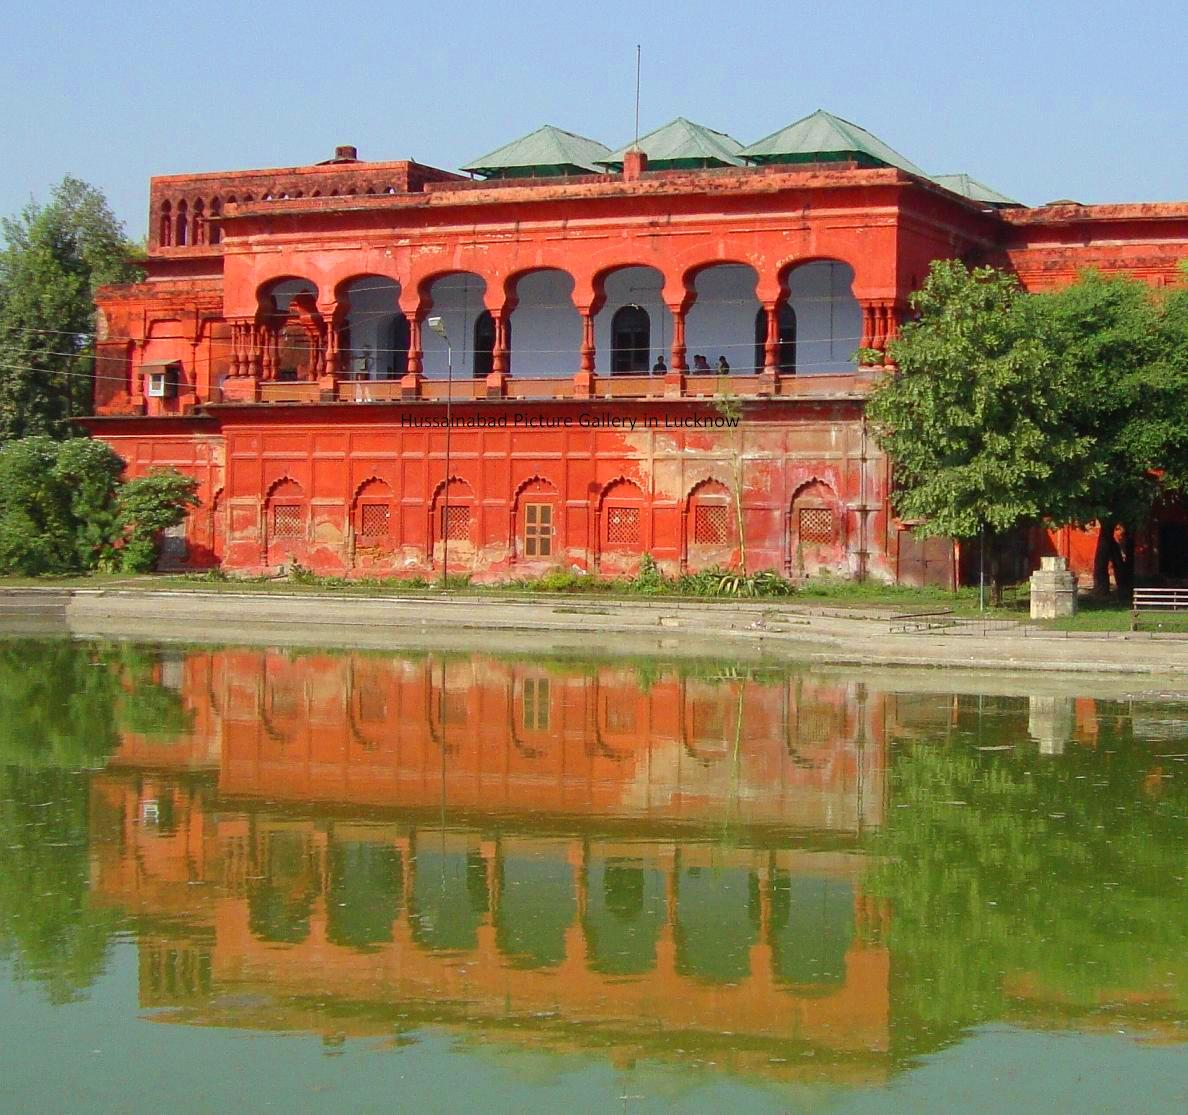 Hussainabad Picture Gallery Lucknow, Lucknow Photos, Pictures, Images: 10_12